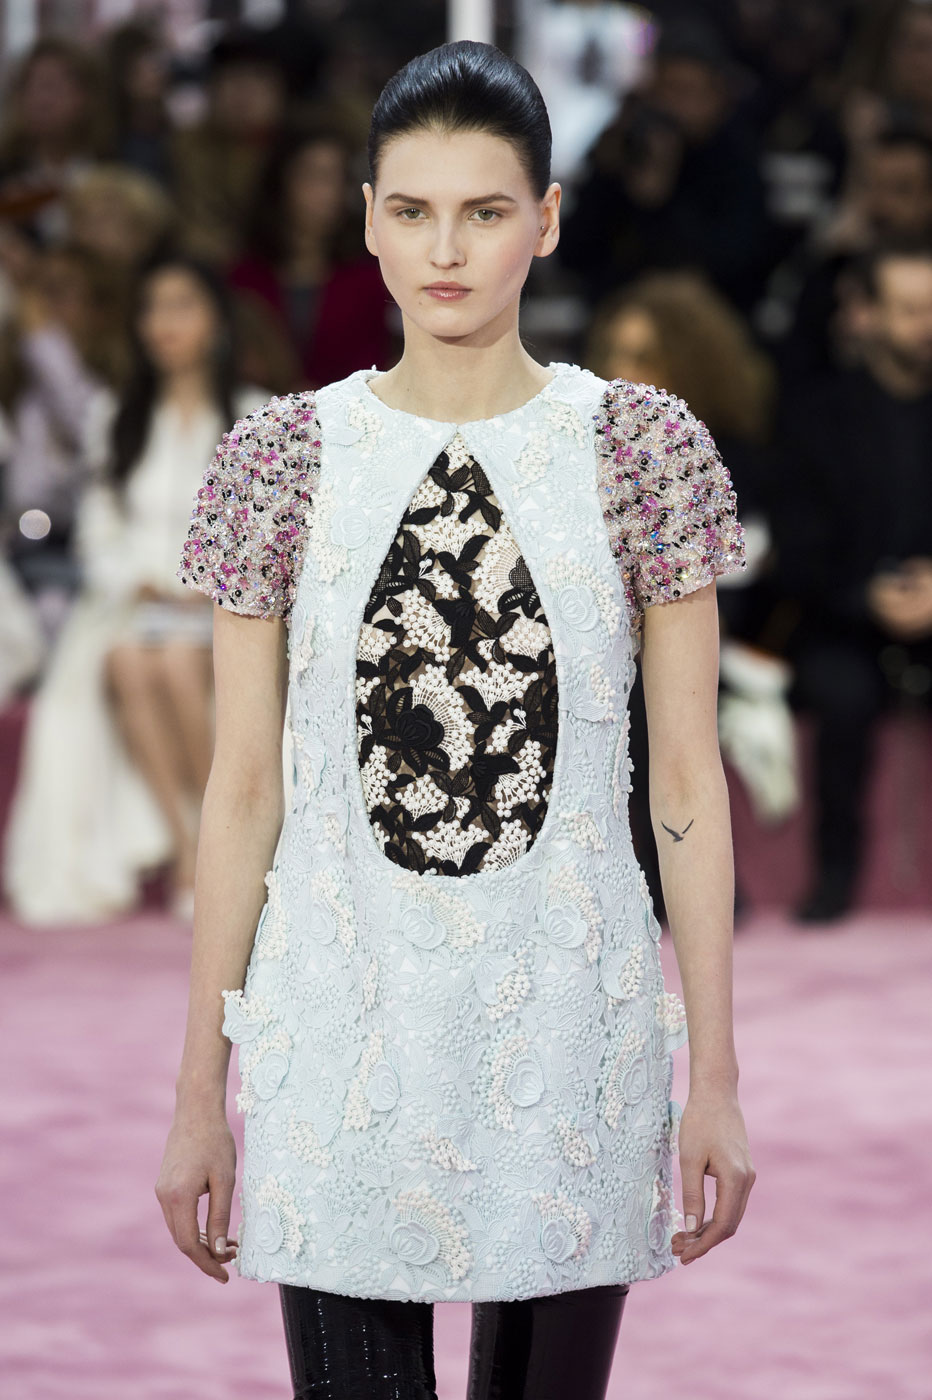 Christian-Dior-fashion-runway-show-haute-couture-paris-spring-summer-2015-the-impression-028